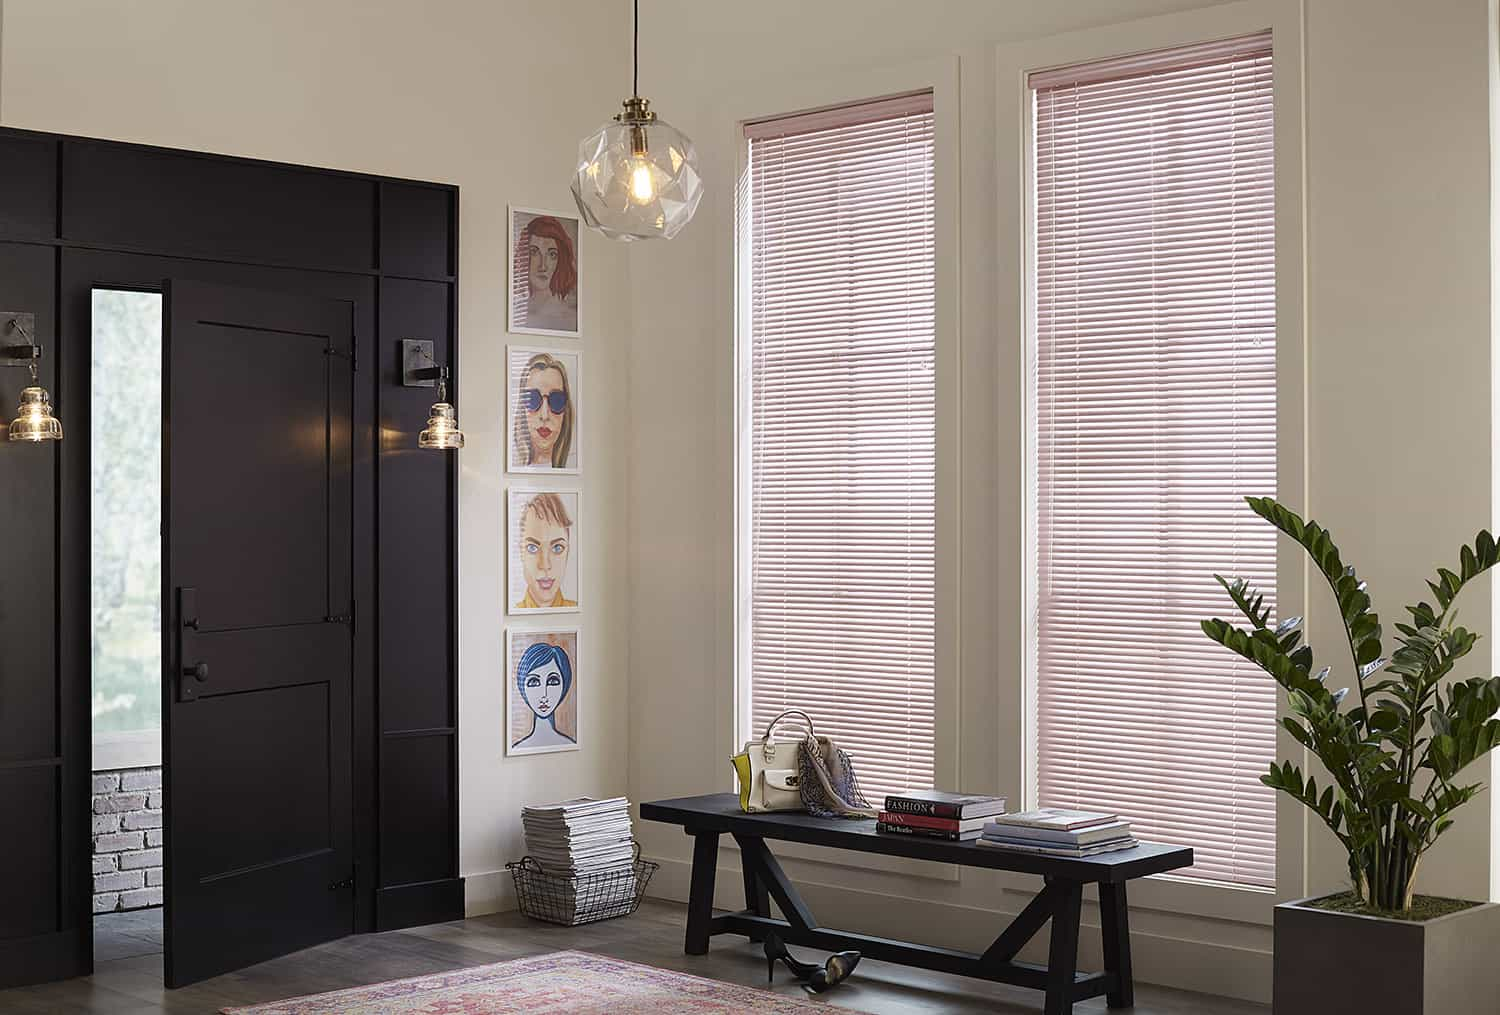 modern entryway with black trim and pink mini blinds.